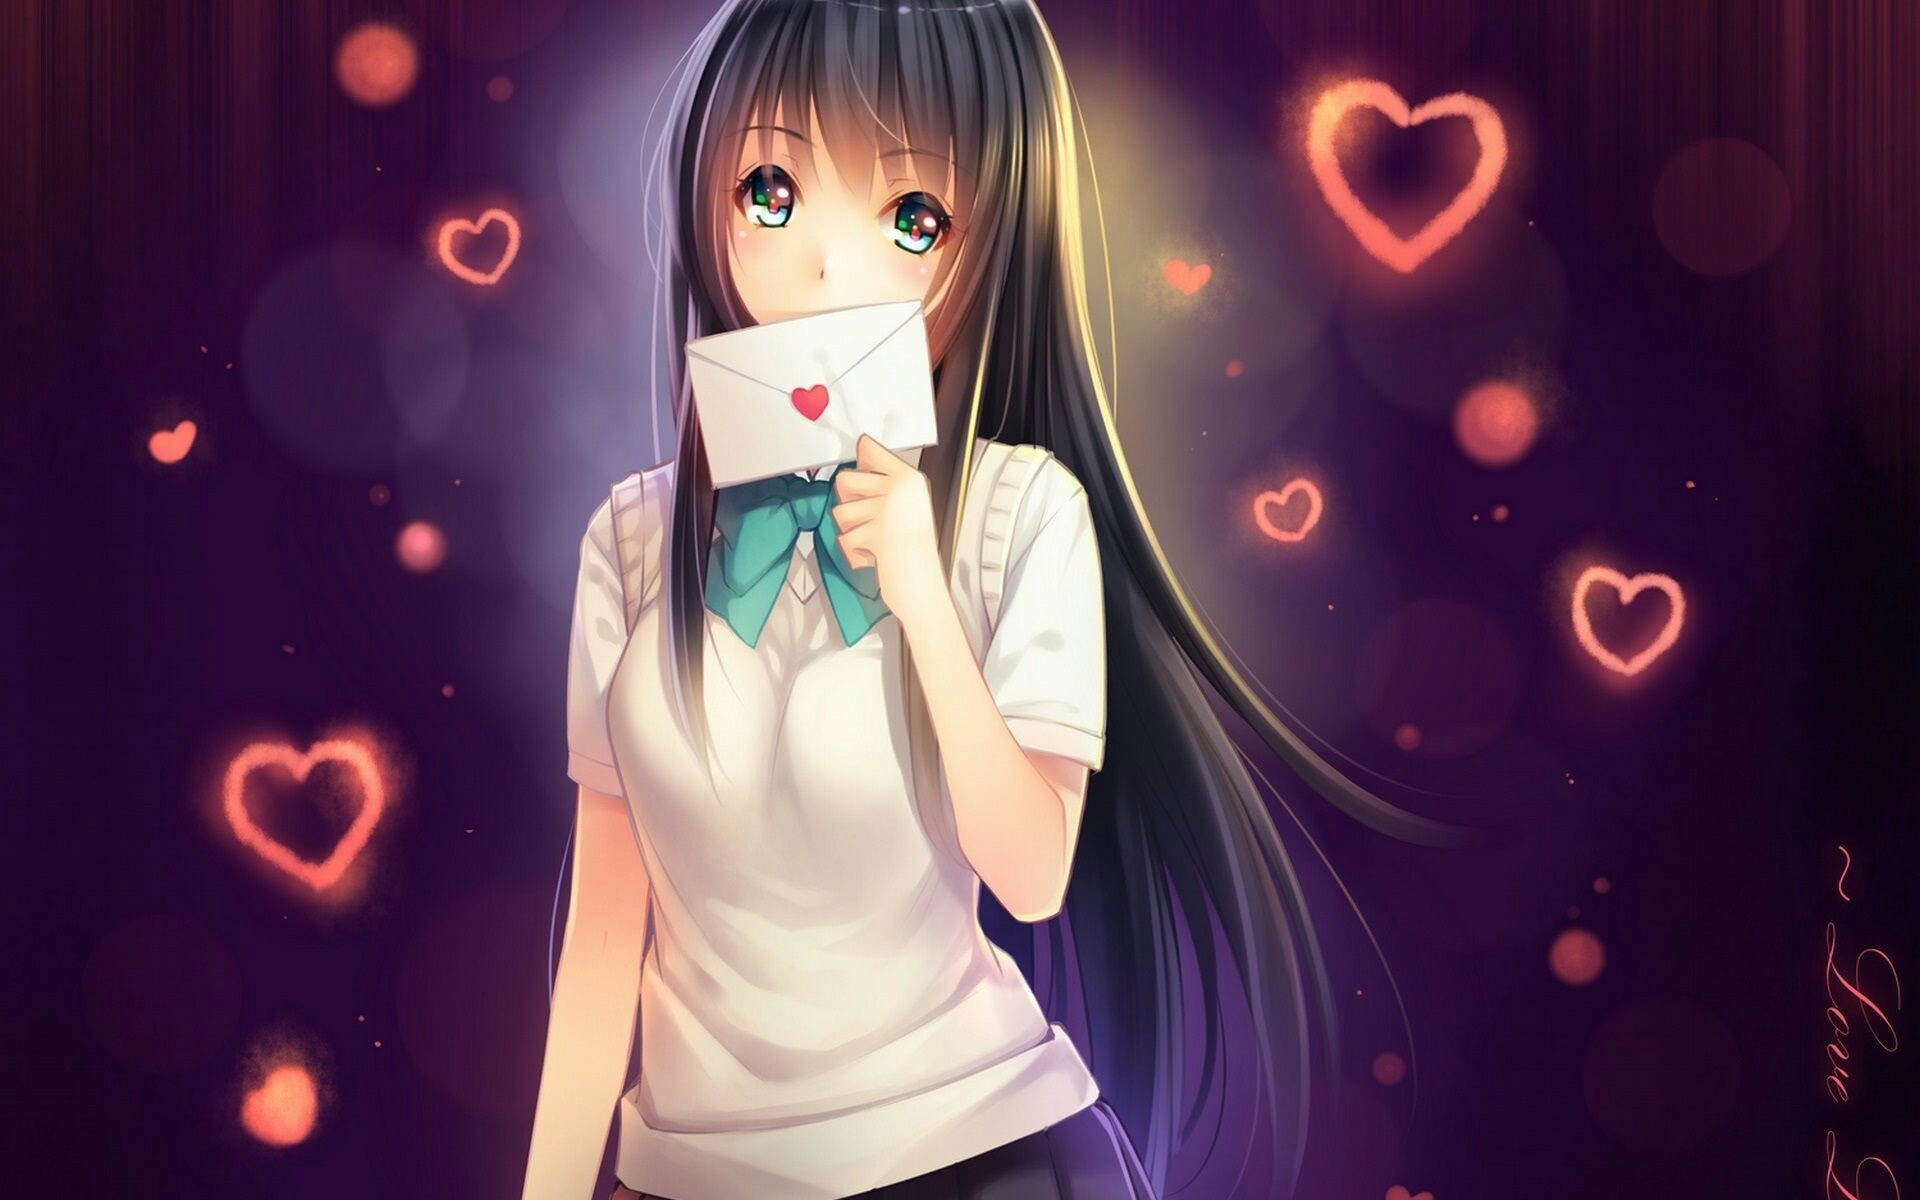 Stylish Girl Wallpaper For Iphone Unordinary Comic Wallpapers 183 ① Wallpapertag